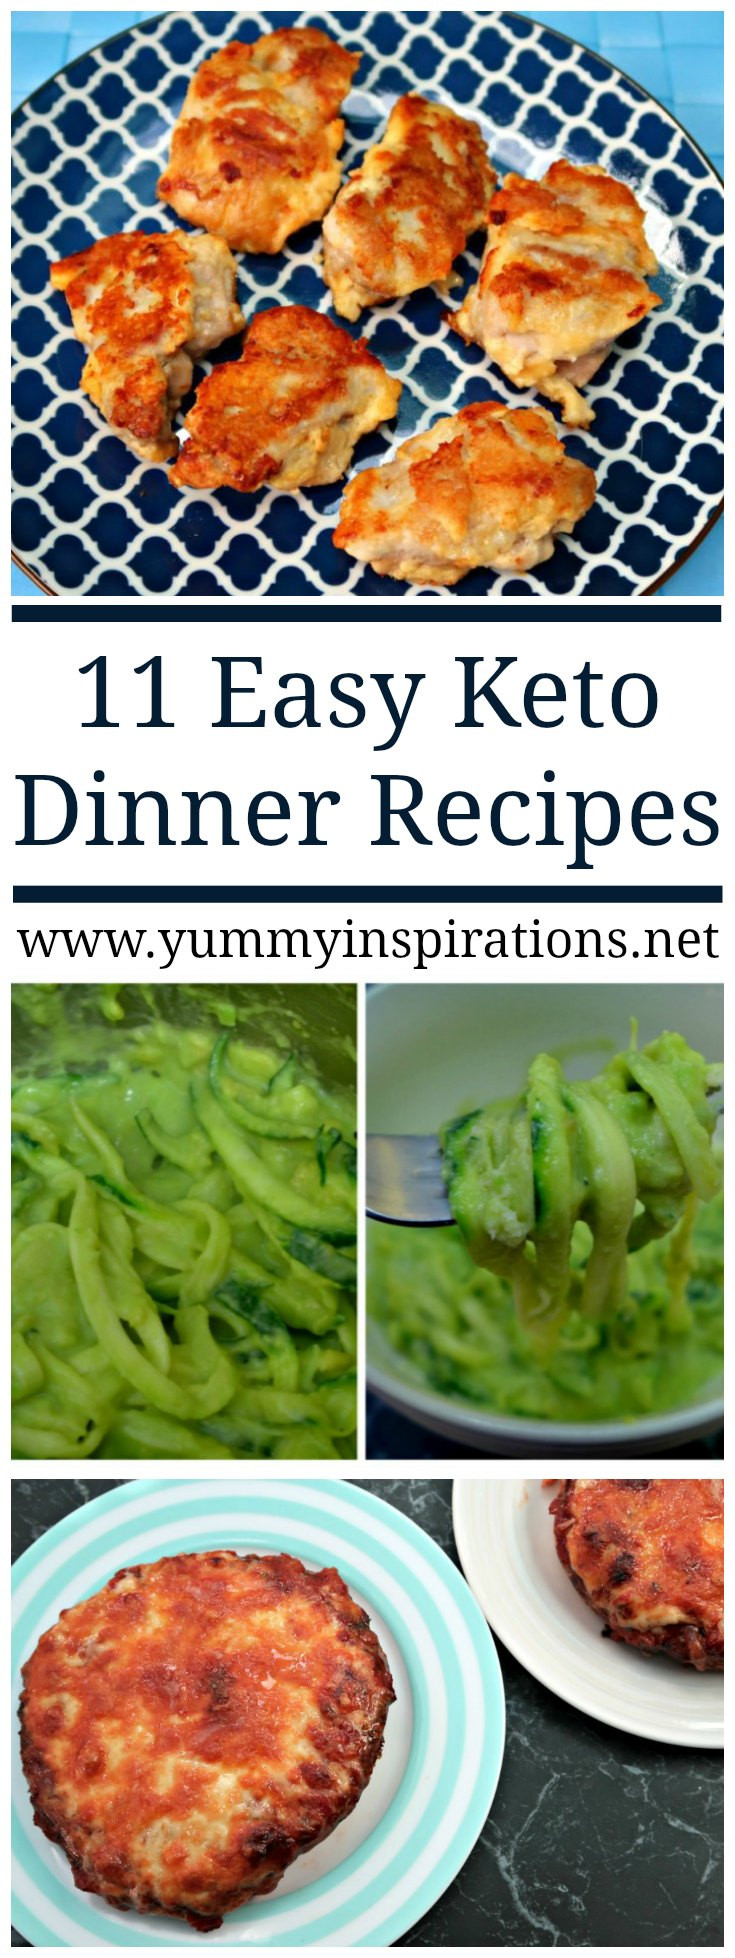 Easy Low Carb Dinner Recipes  11 Easy Keto Dinner Recipes Quick Low Carb Ketogenic